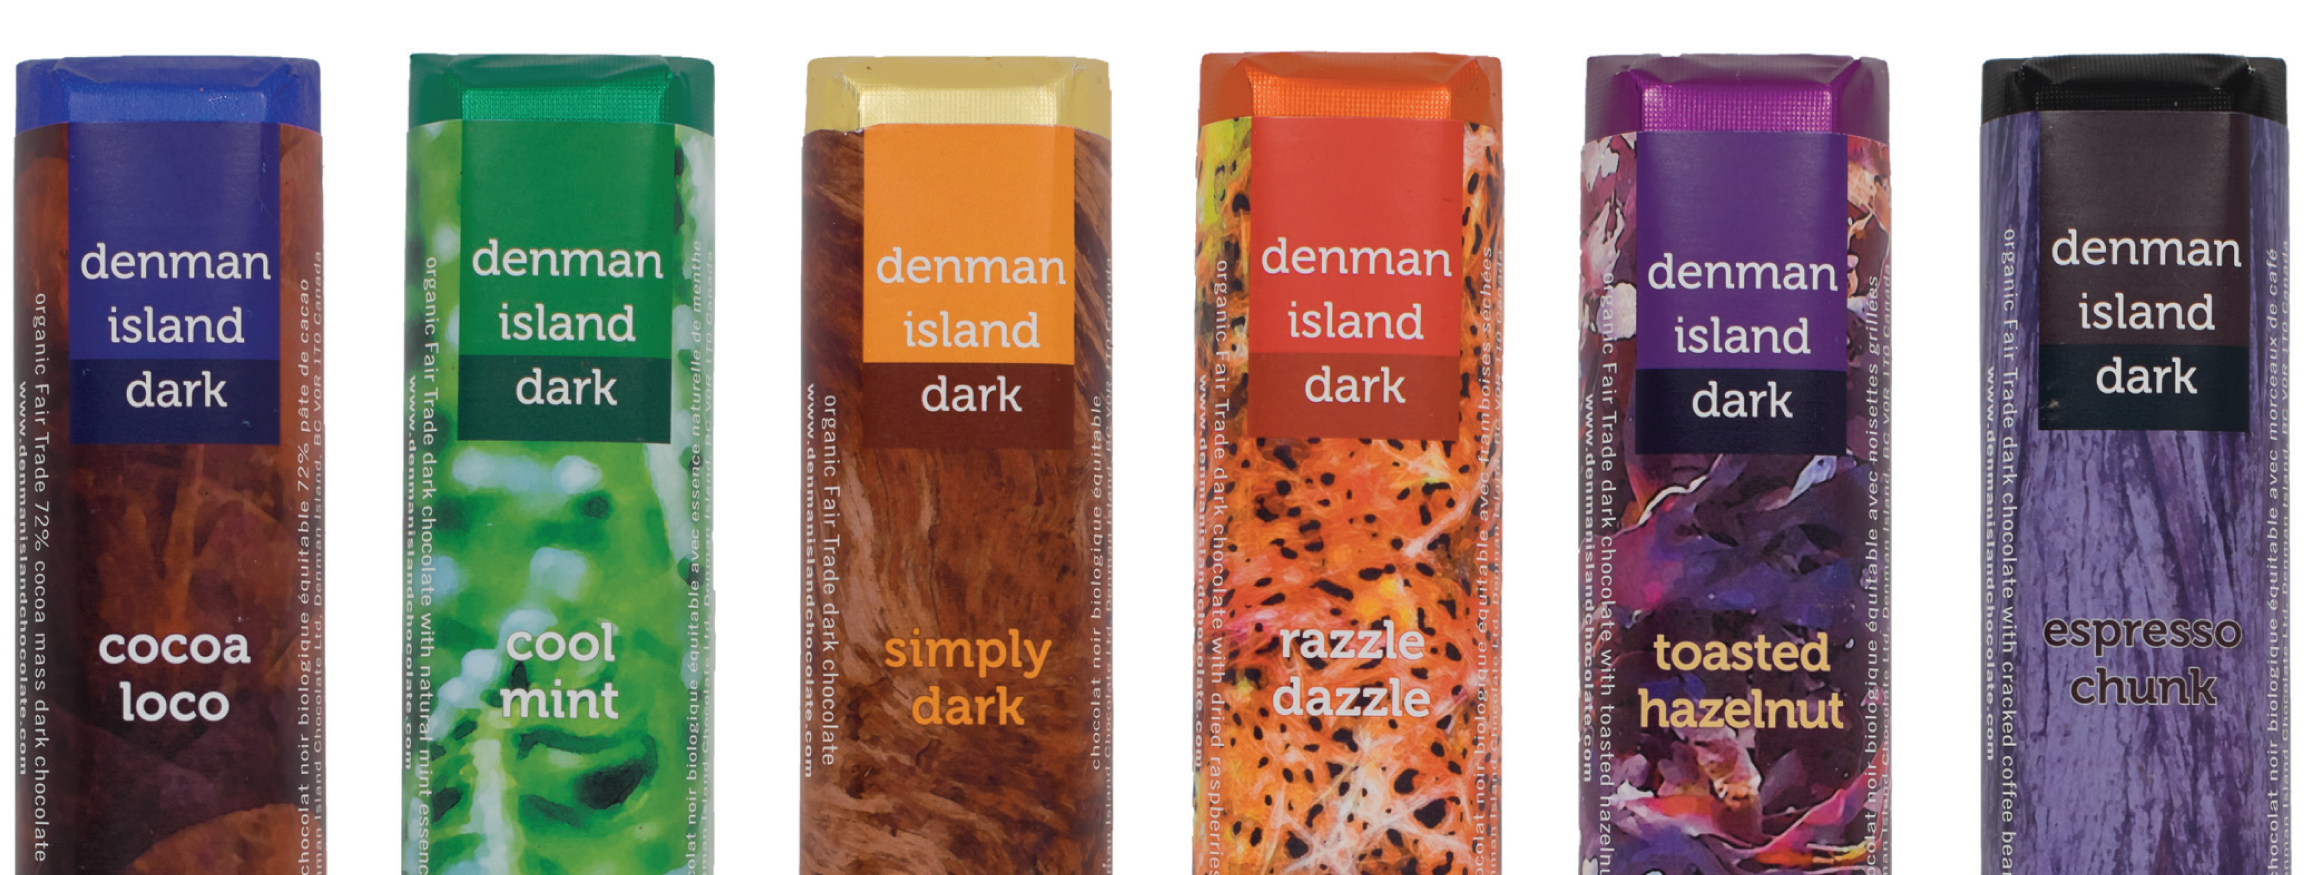 Denman Island Chocolate images